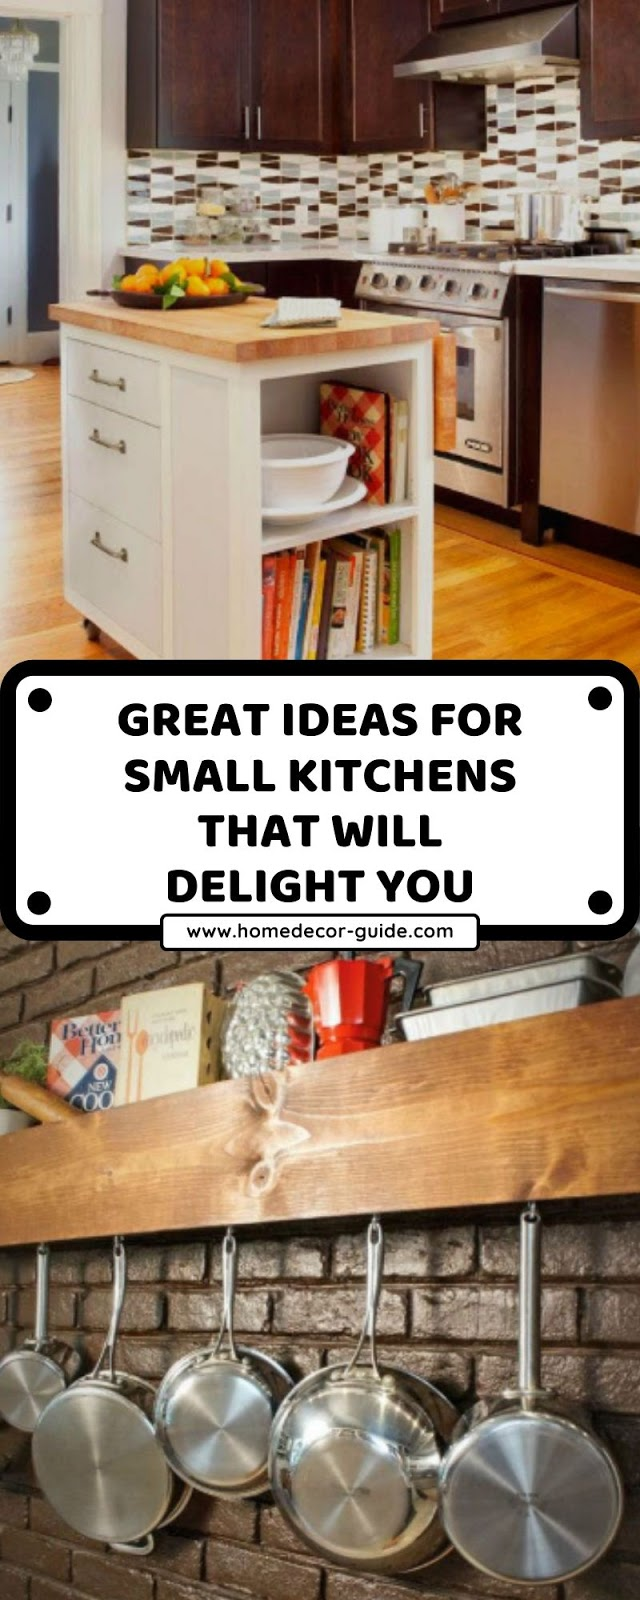 GREAT IDEAS FOR SMALL KITCHENS THAT WILL DELIGHT YOU